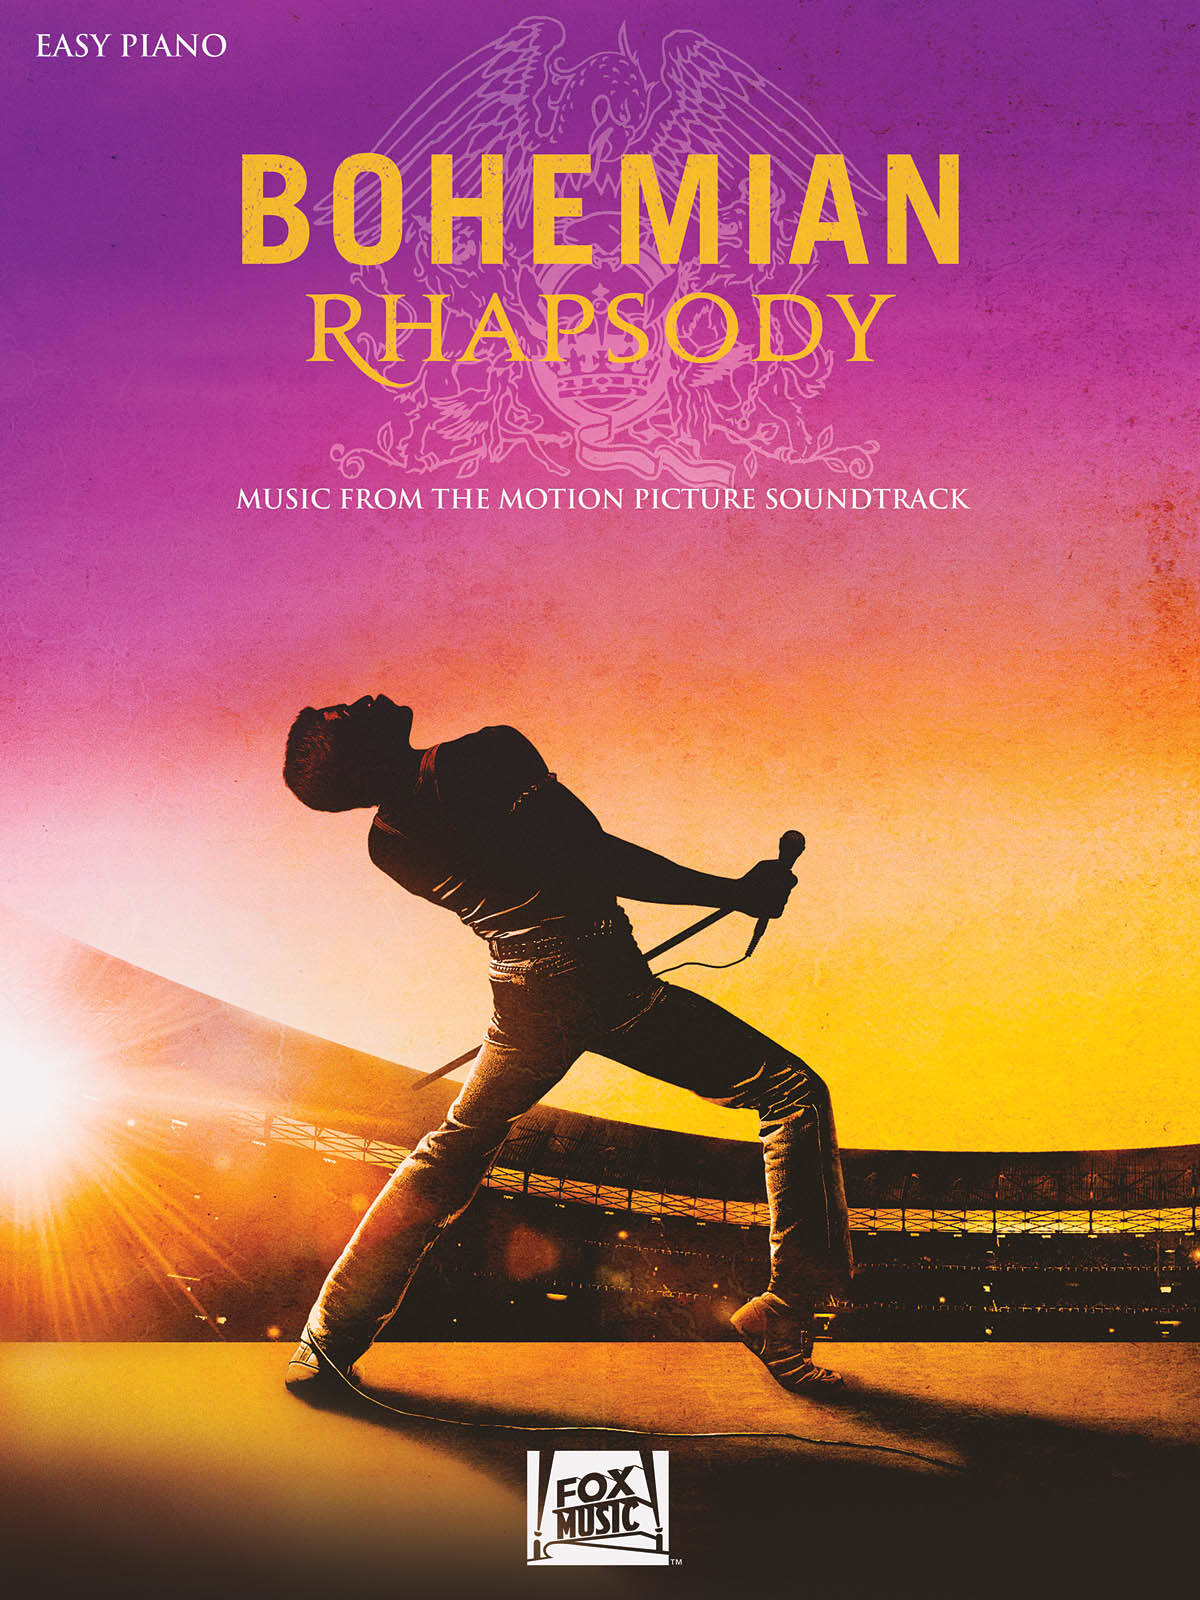 Easy Piano Songbook / Bohemian Rhapsody Music from the Motion Picture Soundtrack Piano facile / Queen / Hal Leonard : photo 1